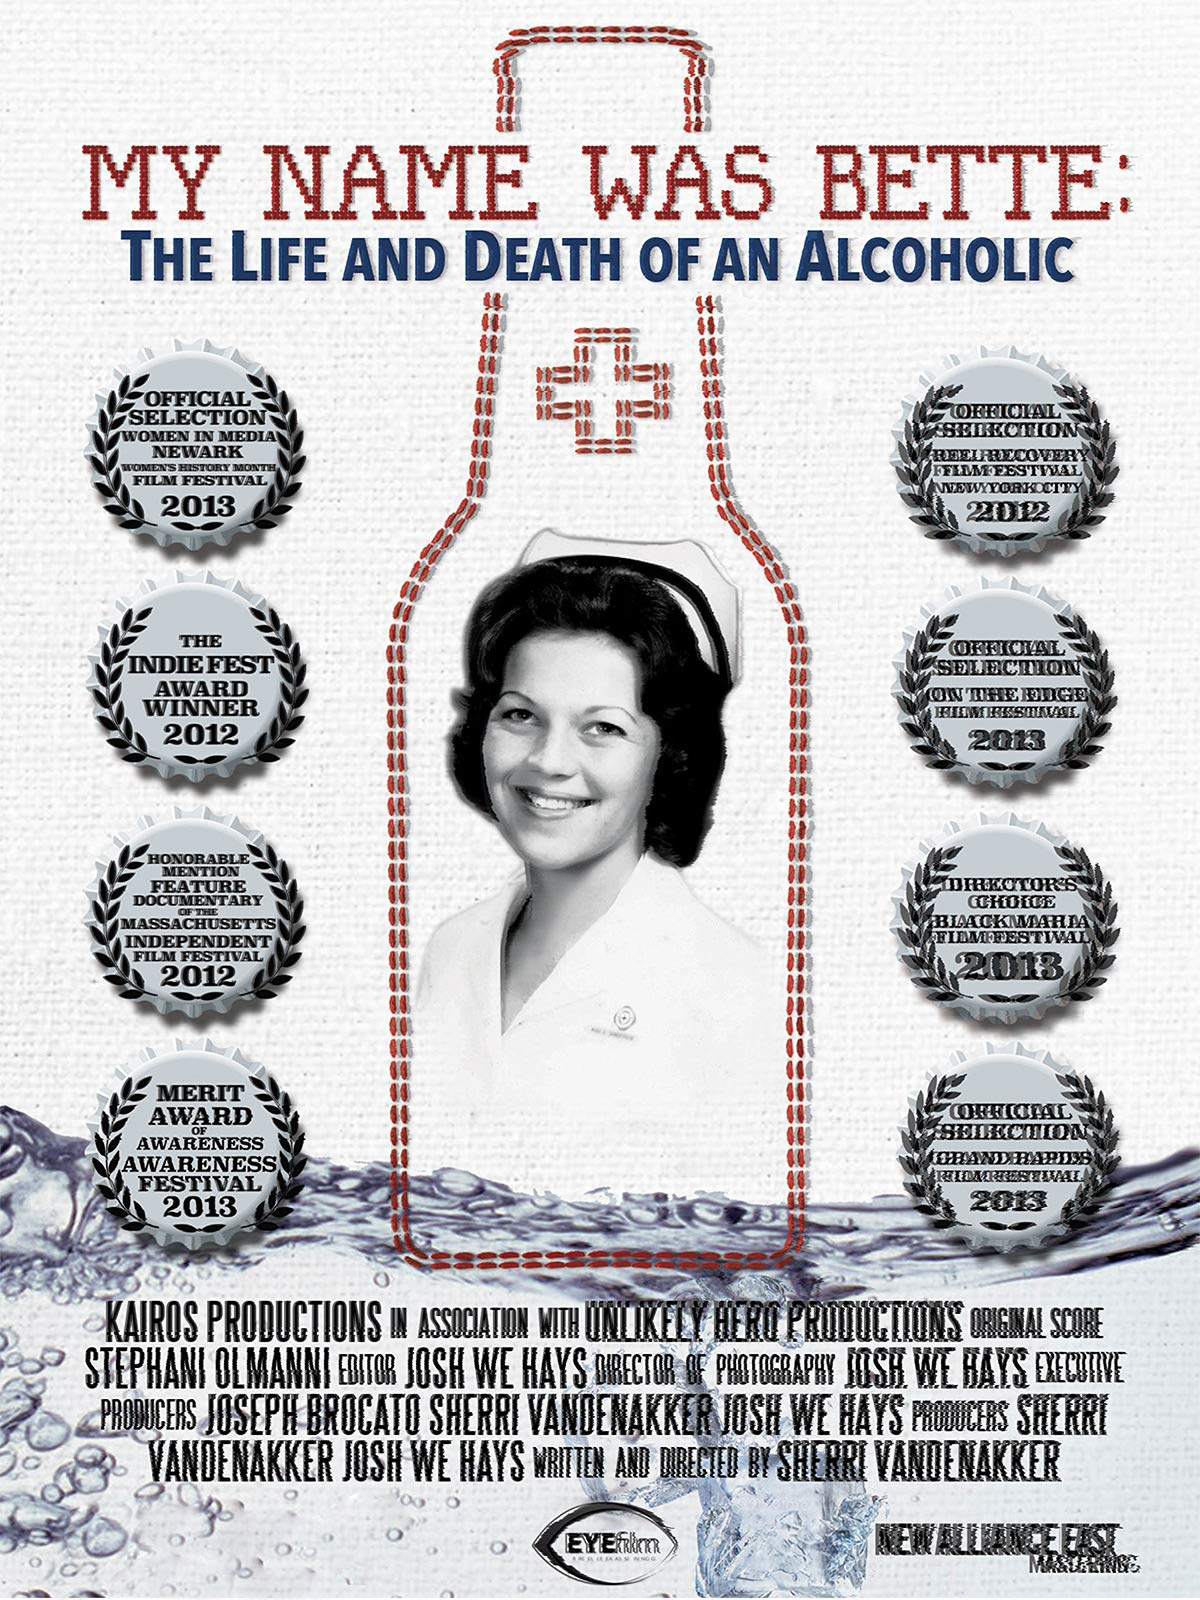 Watch 'My Name Was Bette: The Life and Death of an Alcoholic